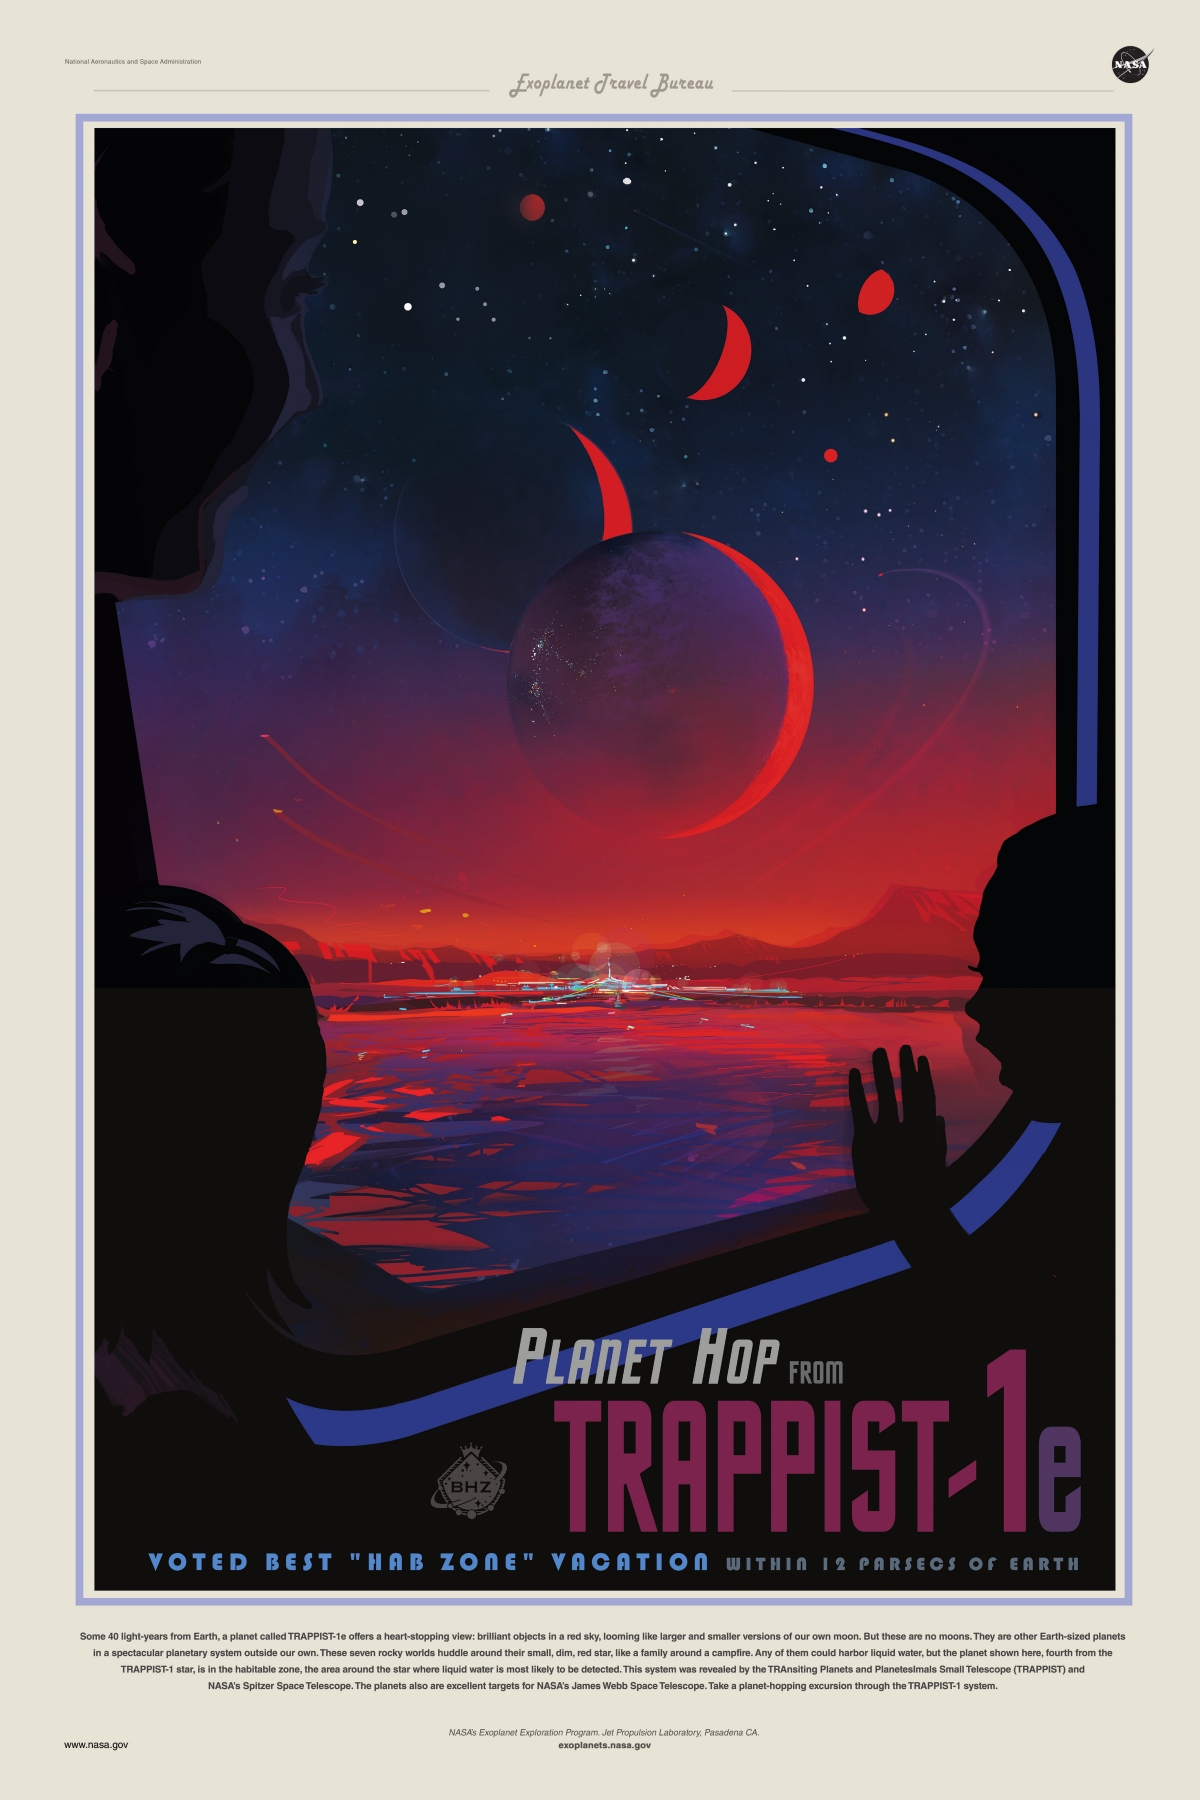 TRAPPIST-1e exoplanet travel poster